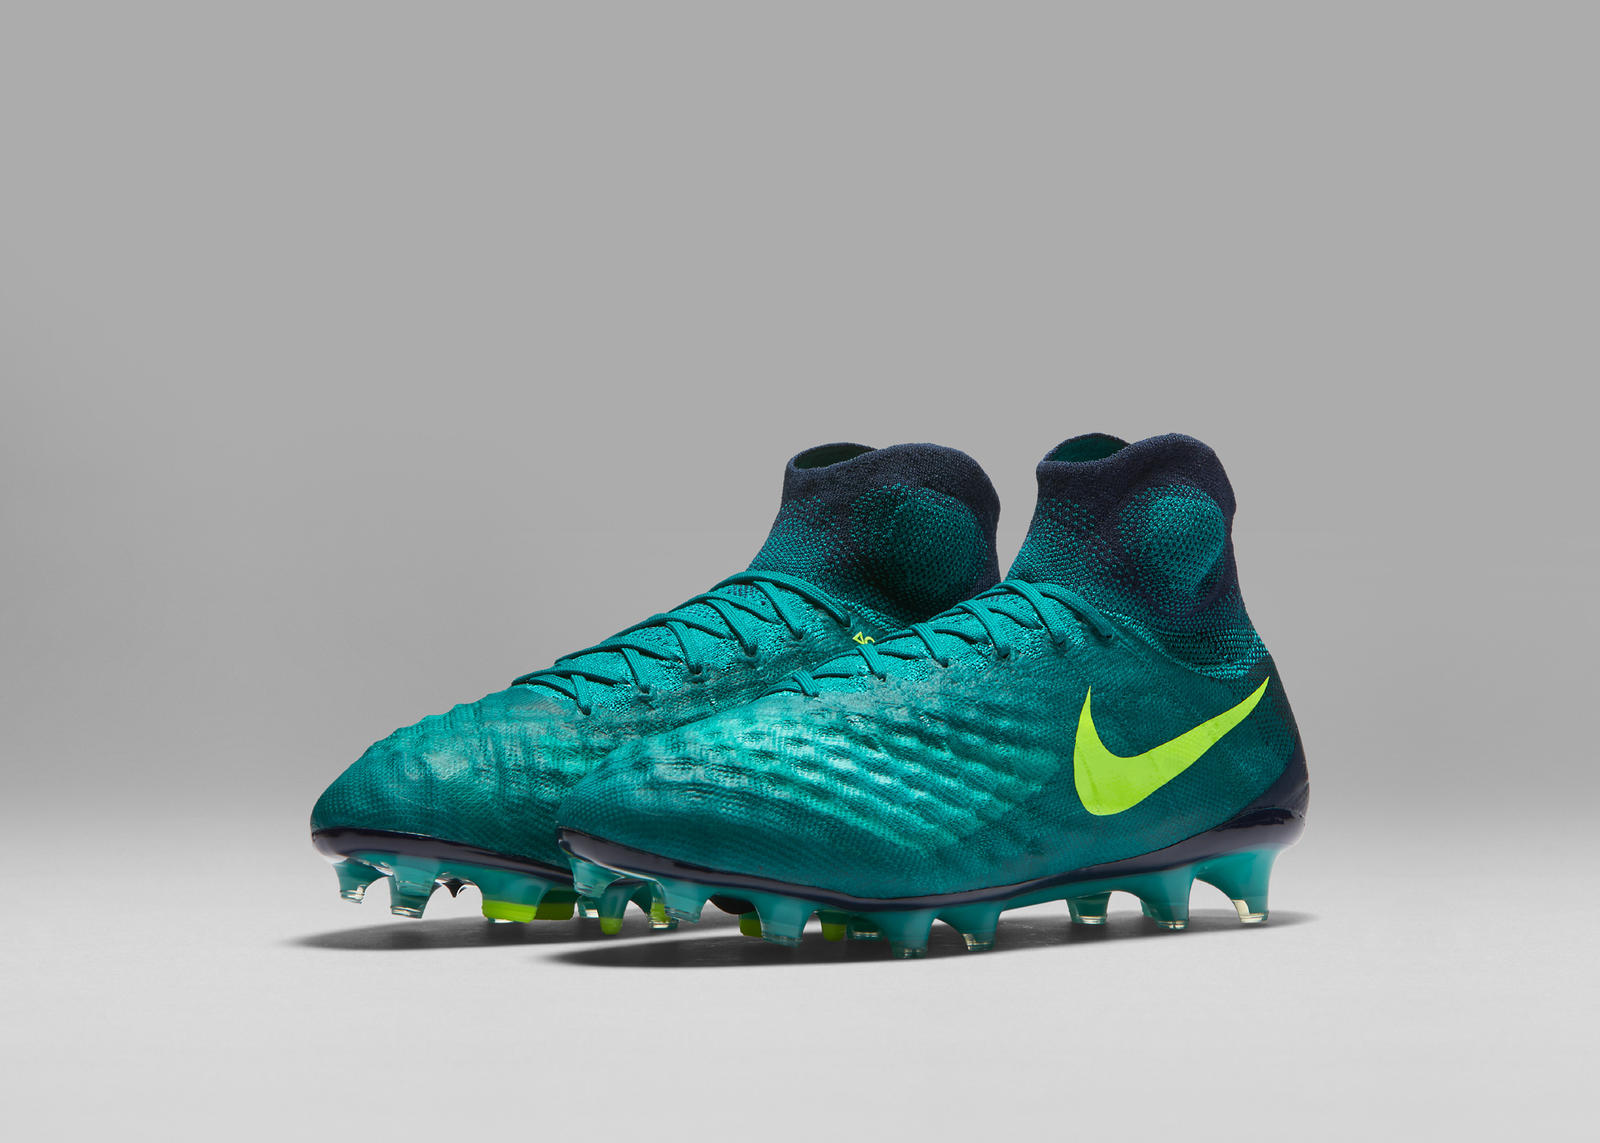 nike football floodlights pack magista obra 2 fg